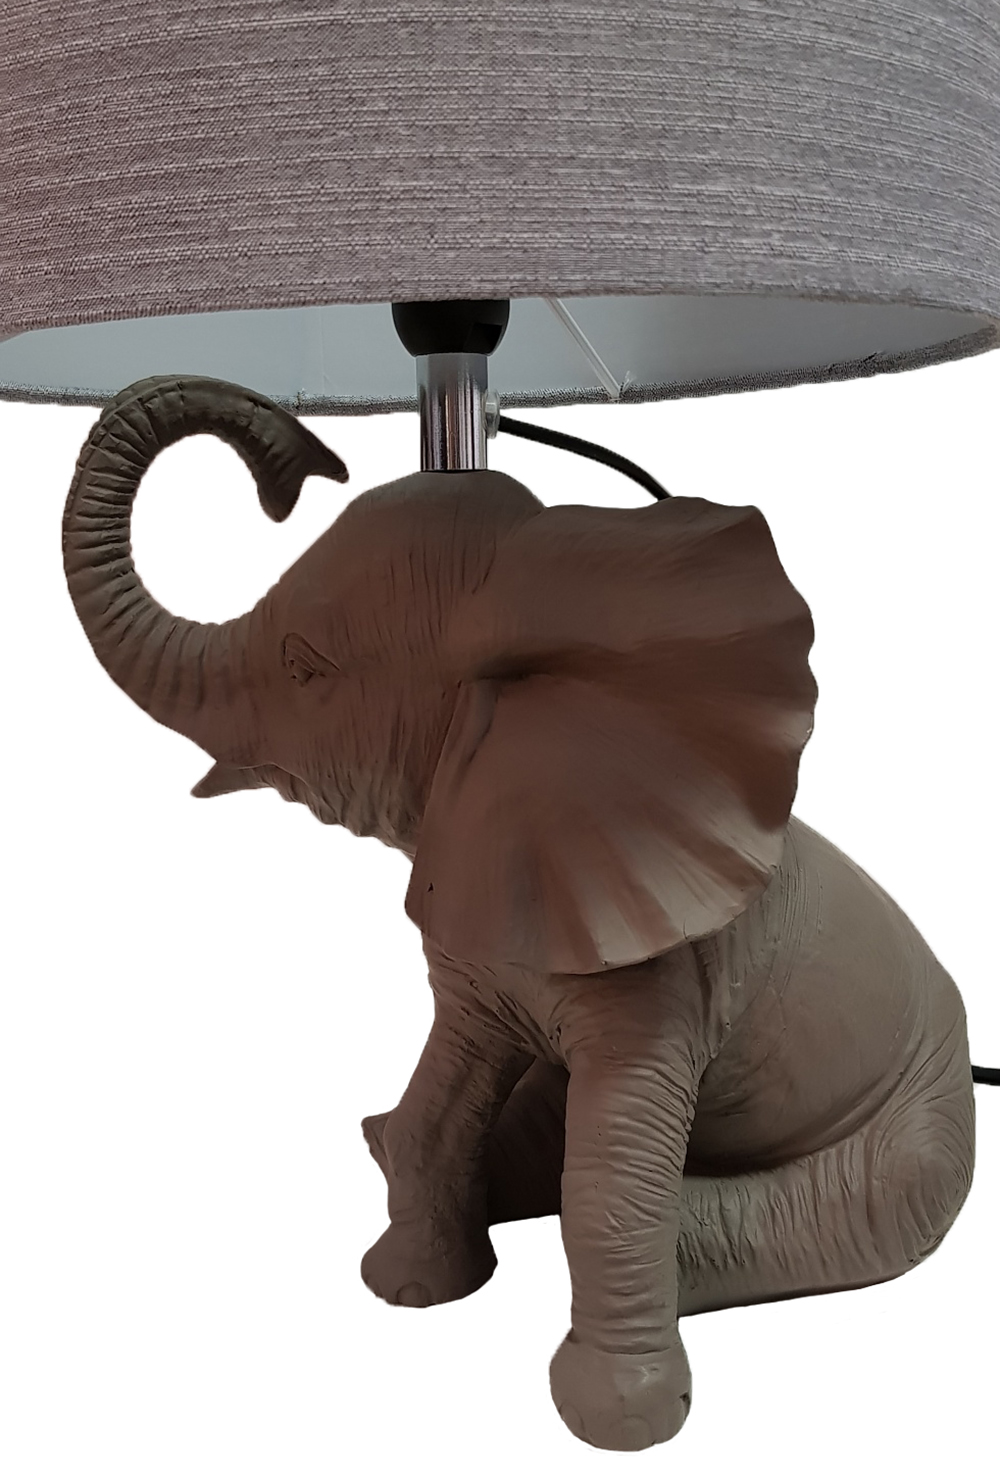 Table Lamp Grey Resin Elephant Animal Shape With Fabric